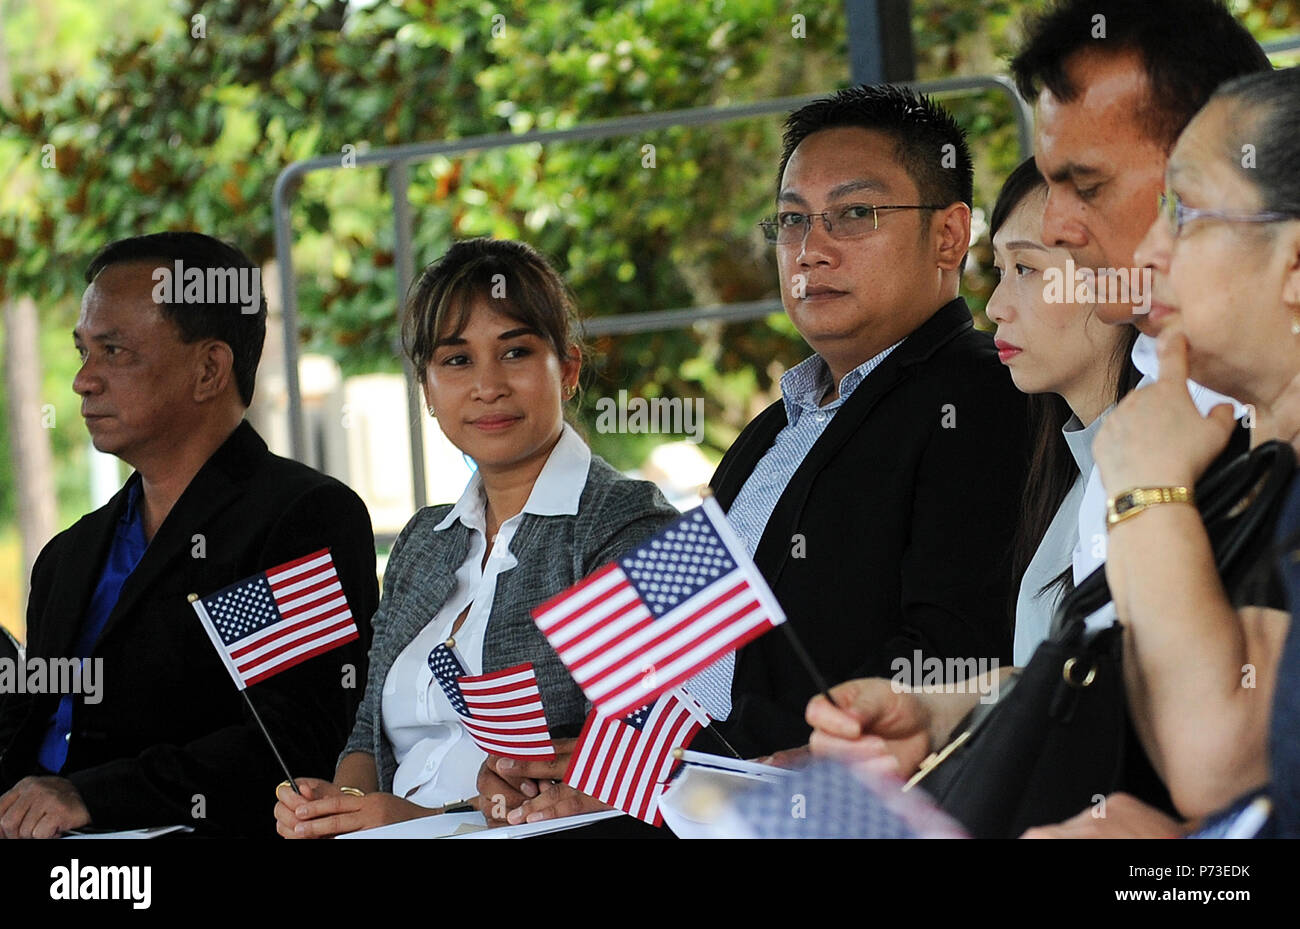 New Citizens Stock Photos & New Citizens Stock Images - Alamy